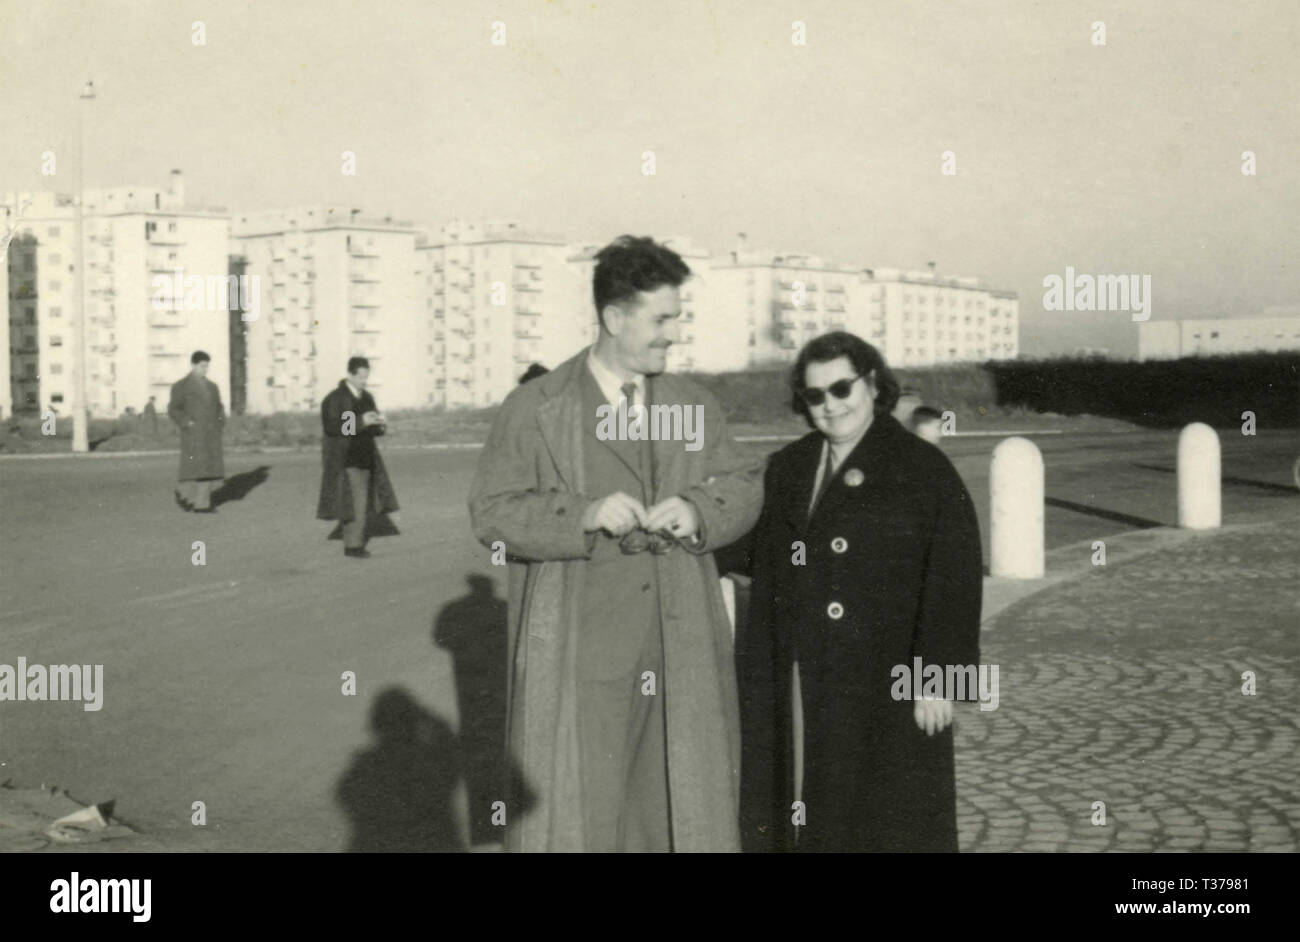 Mom and son at the new housing project at S. Giovanni Bosco, Rome, Italy, 1959 Stock Photo